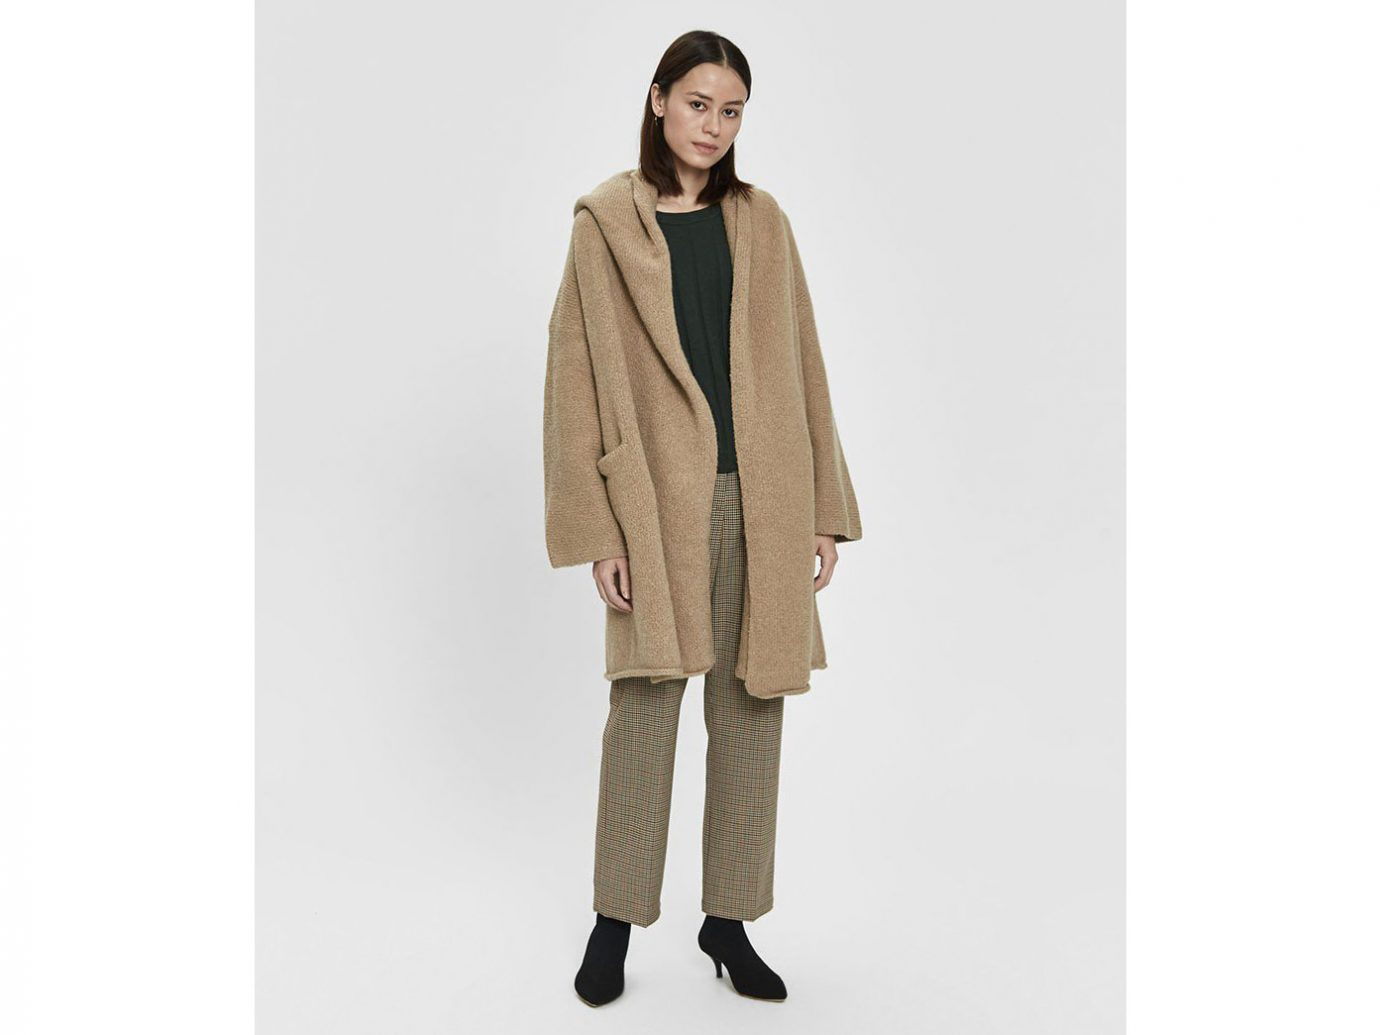 Lauren Manoogian Capote Shawl Coat in Sand